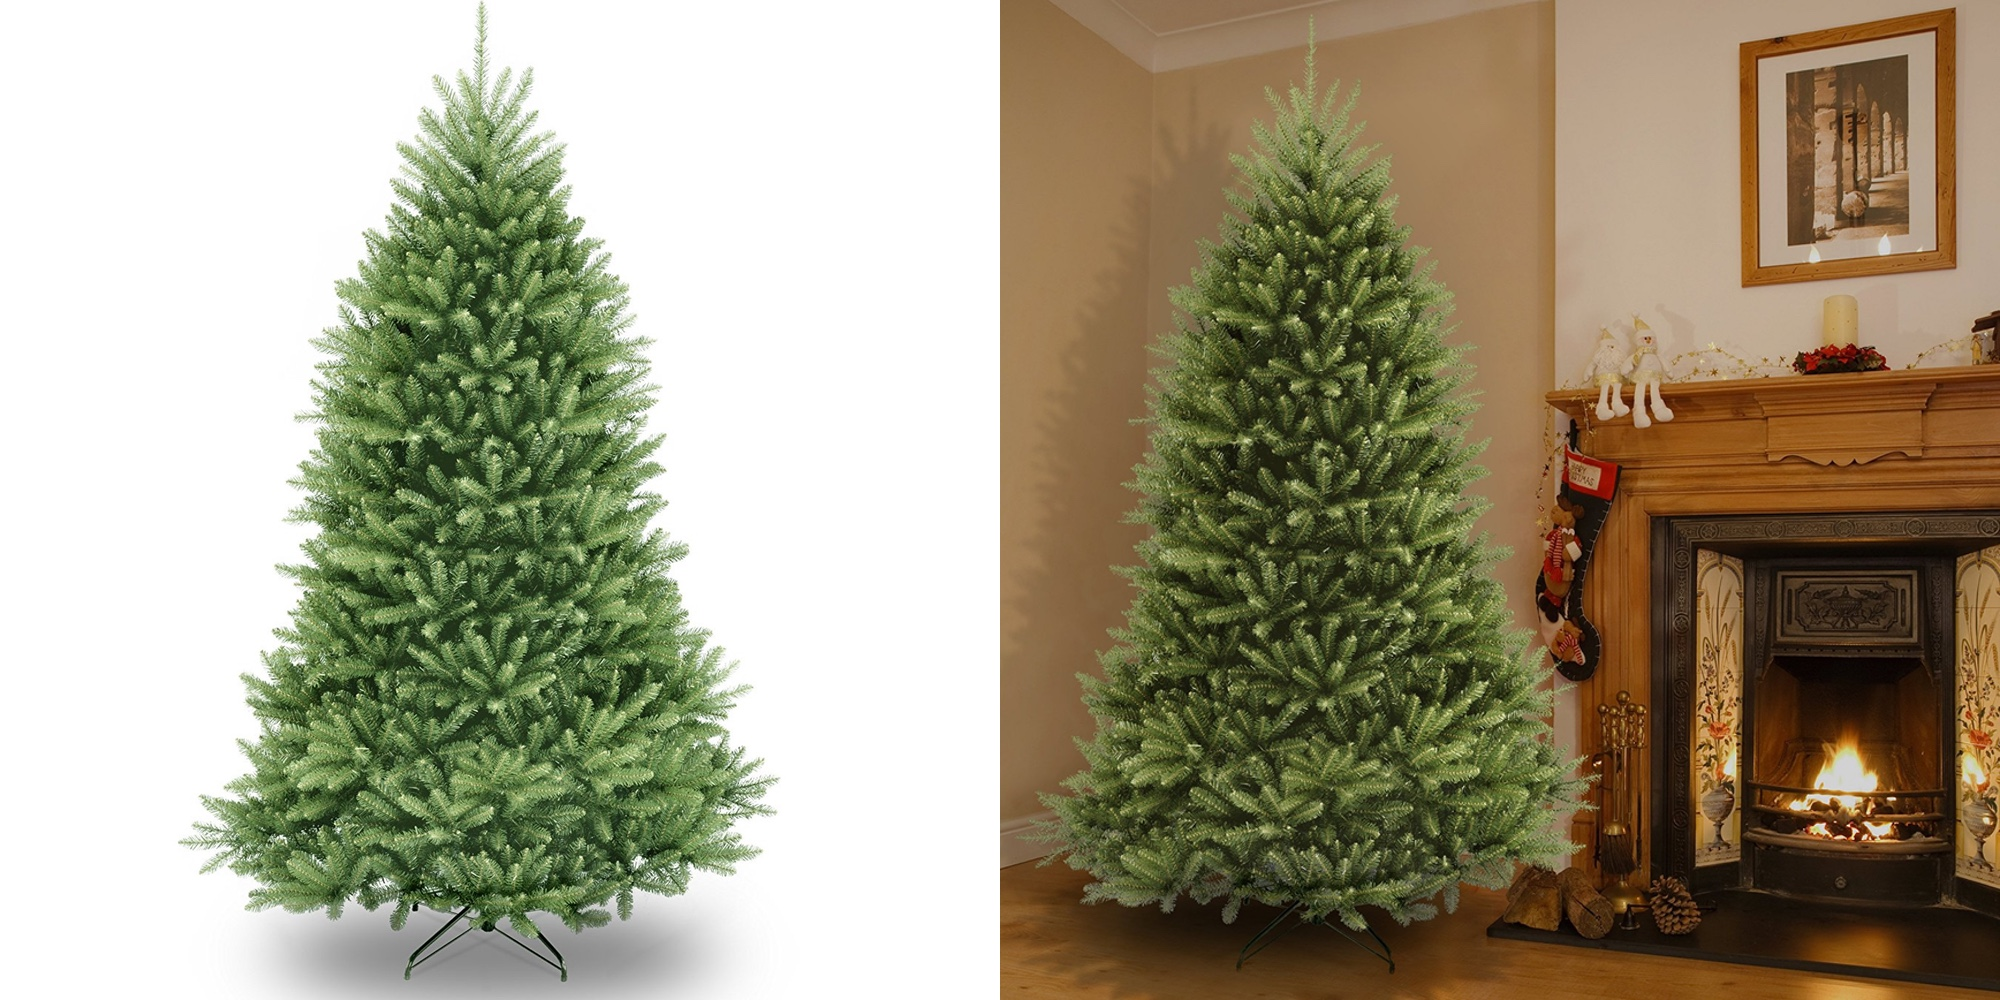 Save On An Artificial Christmas Tree From Amazon: 7.5-ft